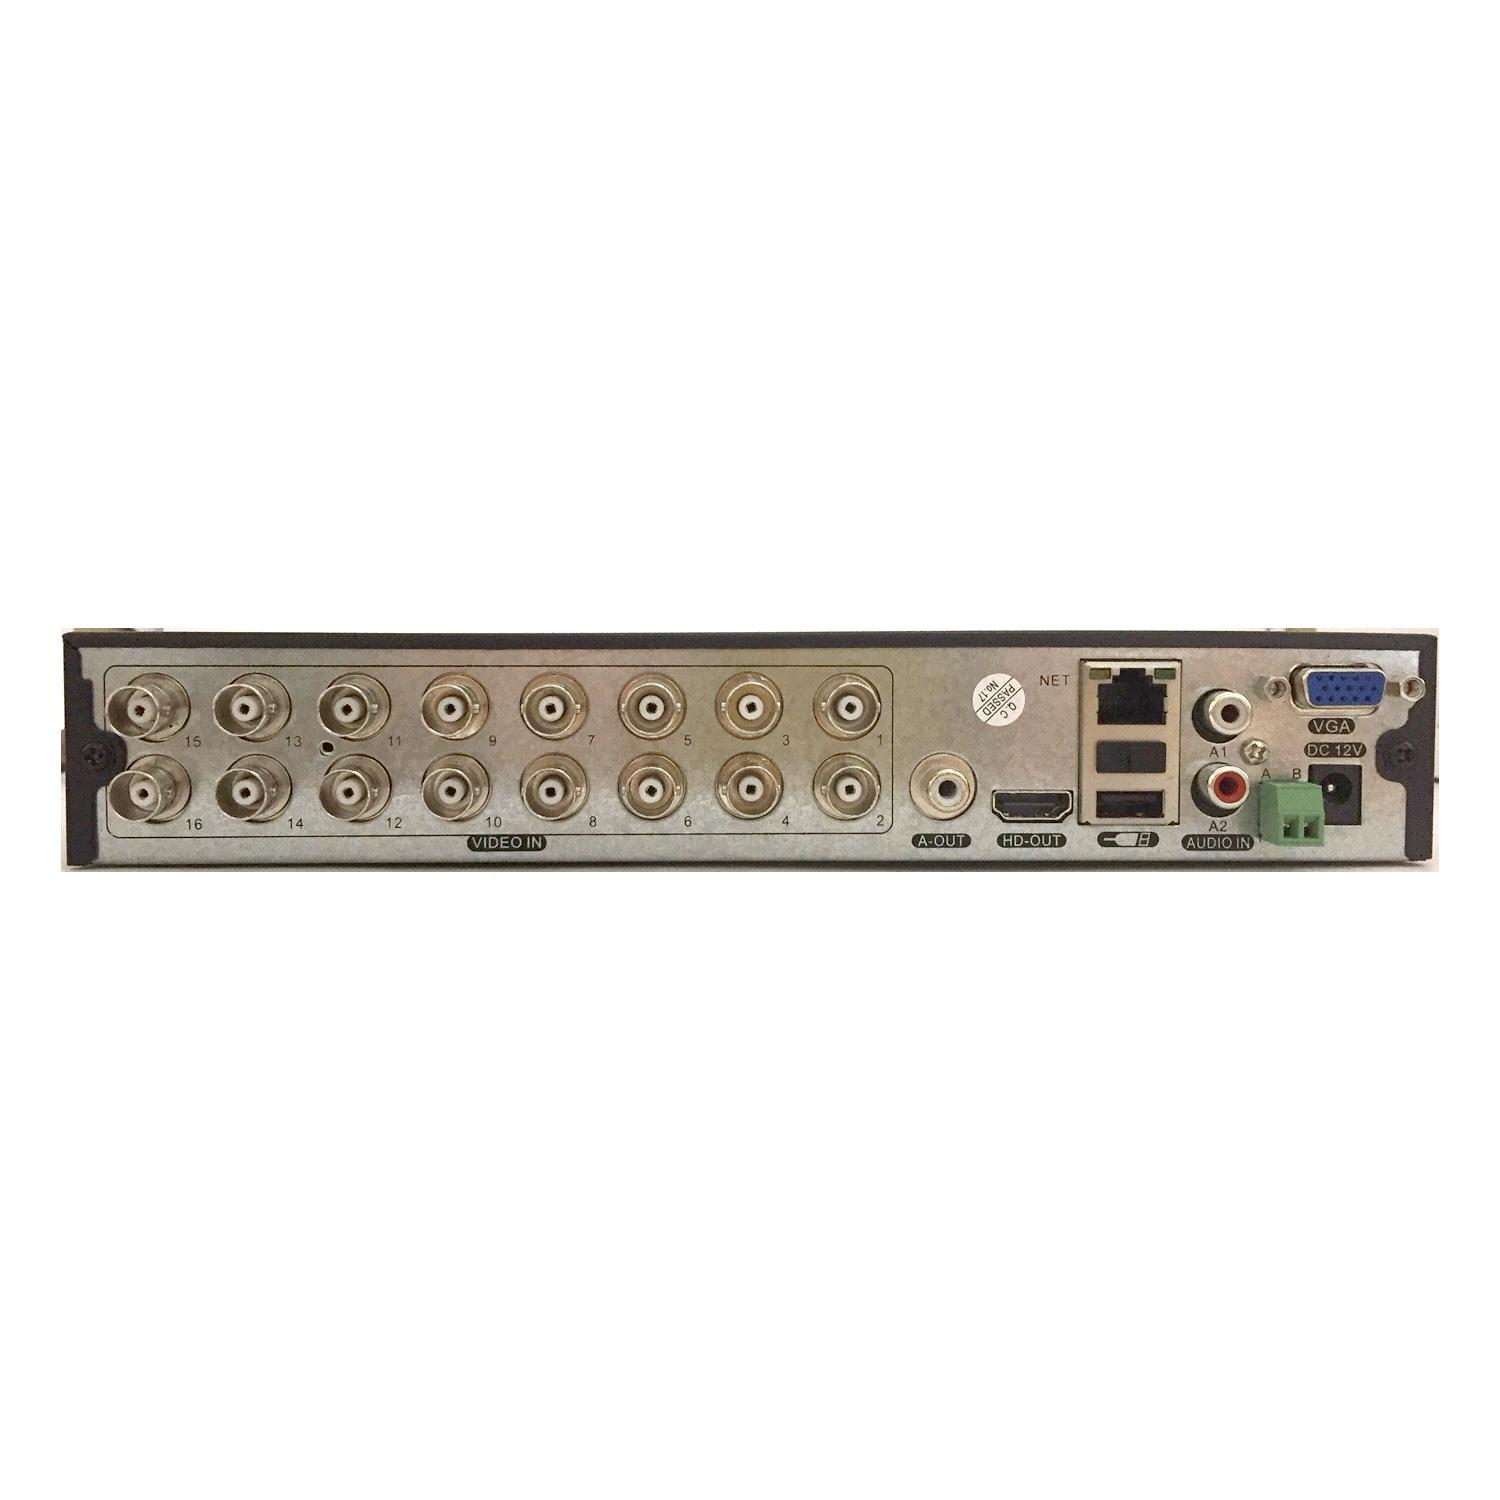 Xvr 16 canali ahd/cvi/tvi/ip 2m/5m lite - NVR - Network Video Recorder | Lorwen.it